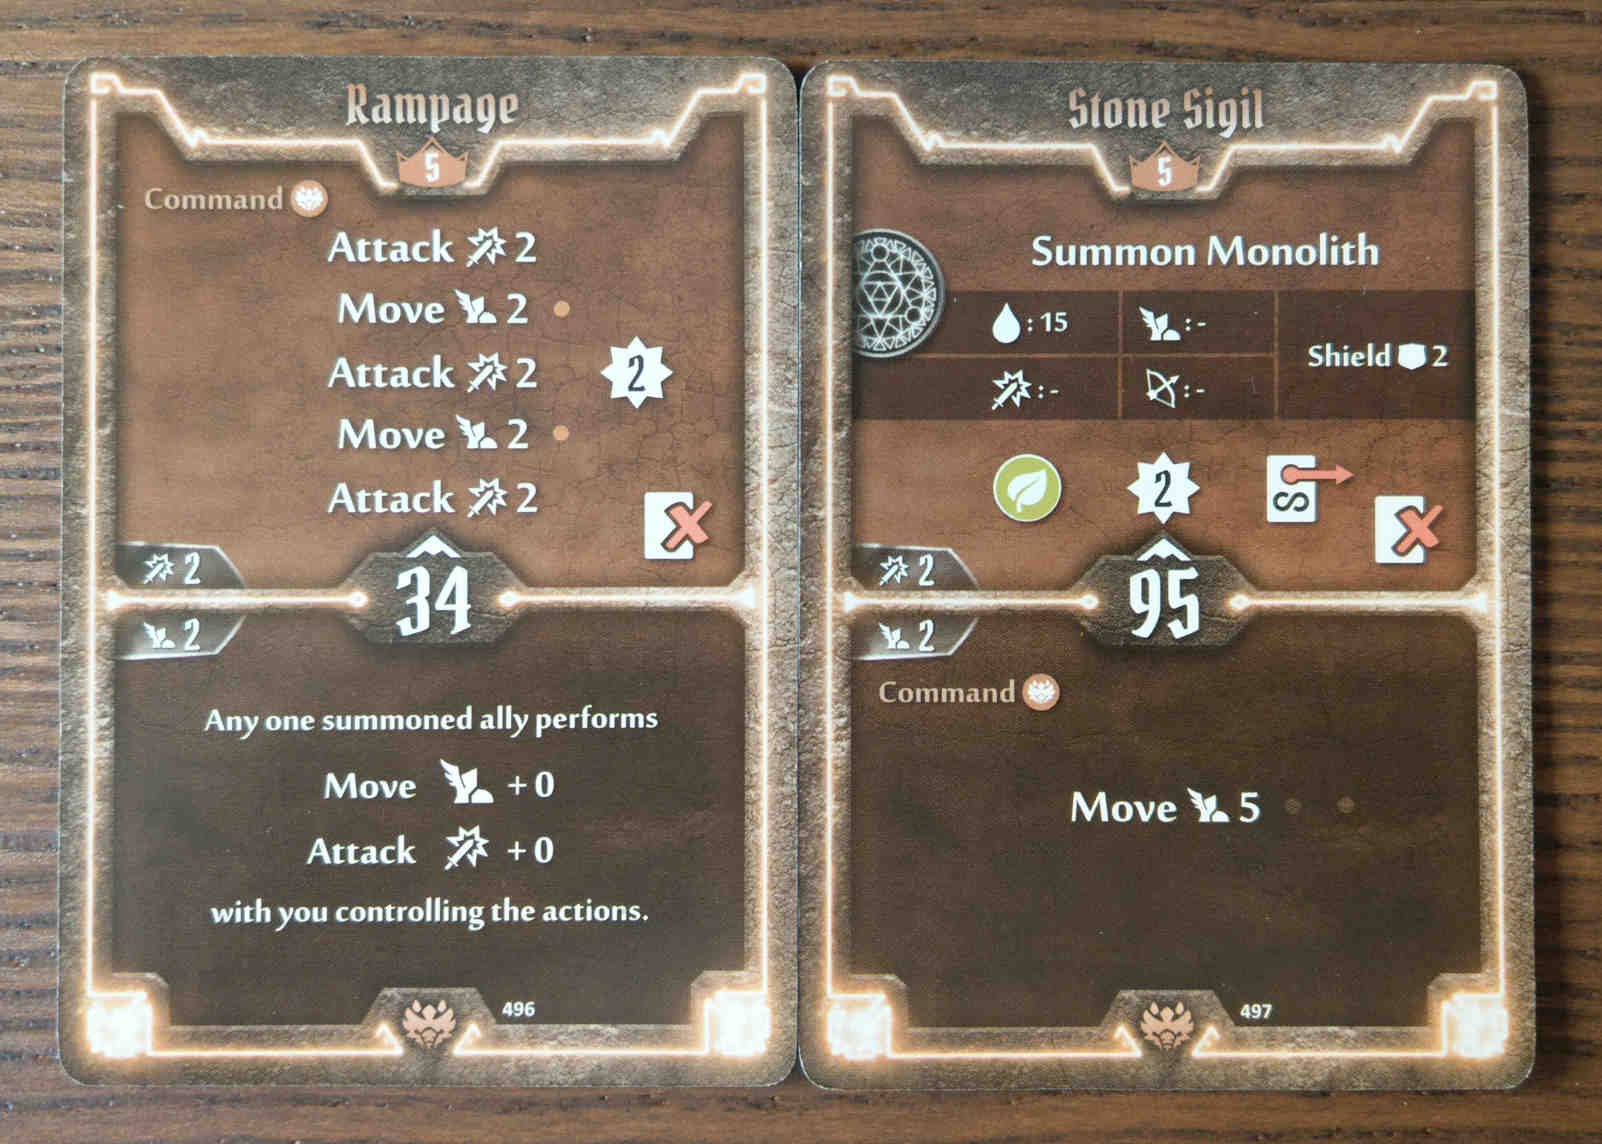 Beast Tyrant level 5 cards - Rampage and Stone Sigil